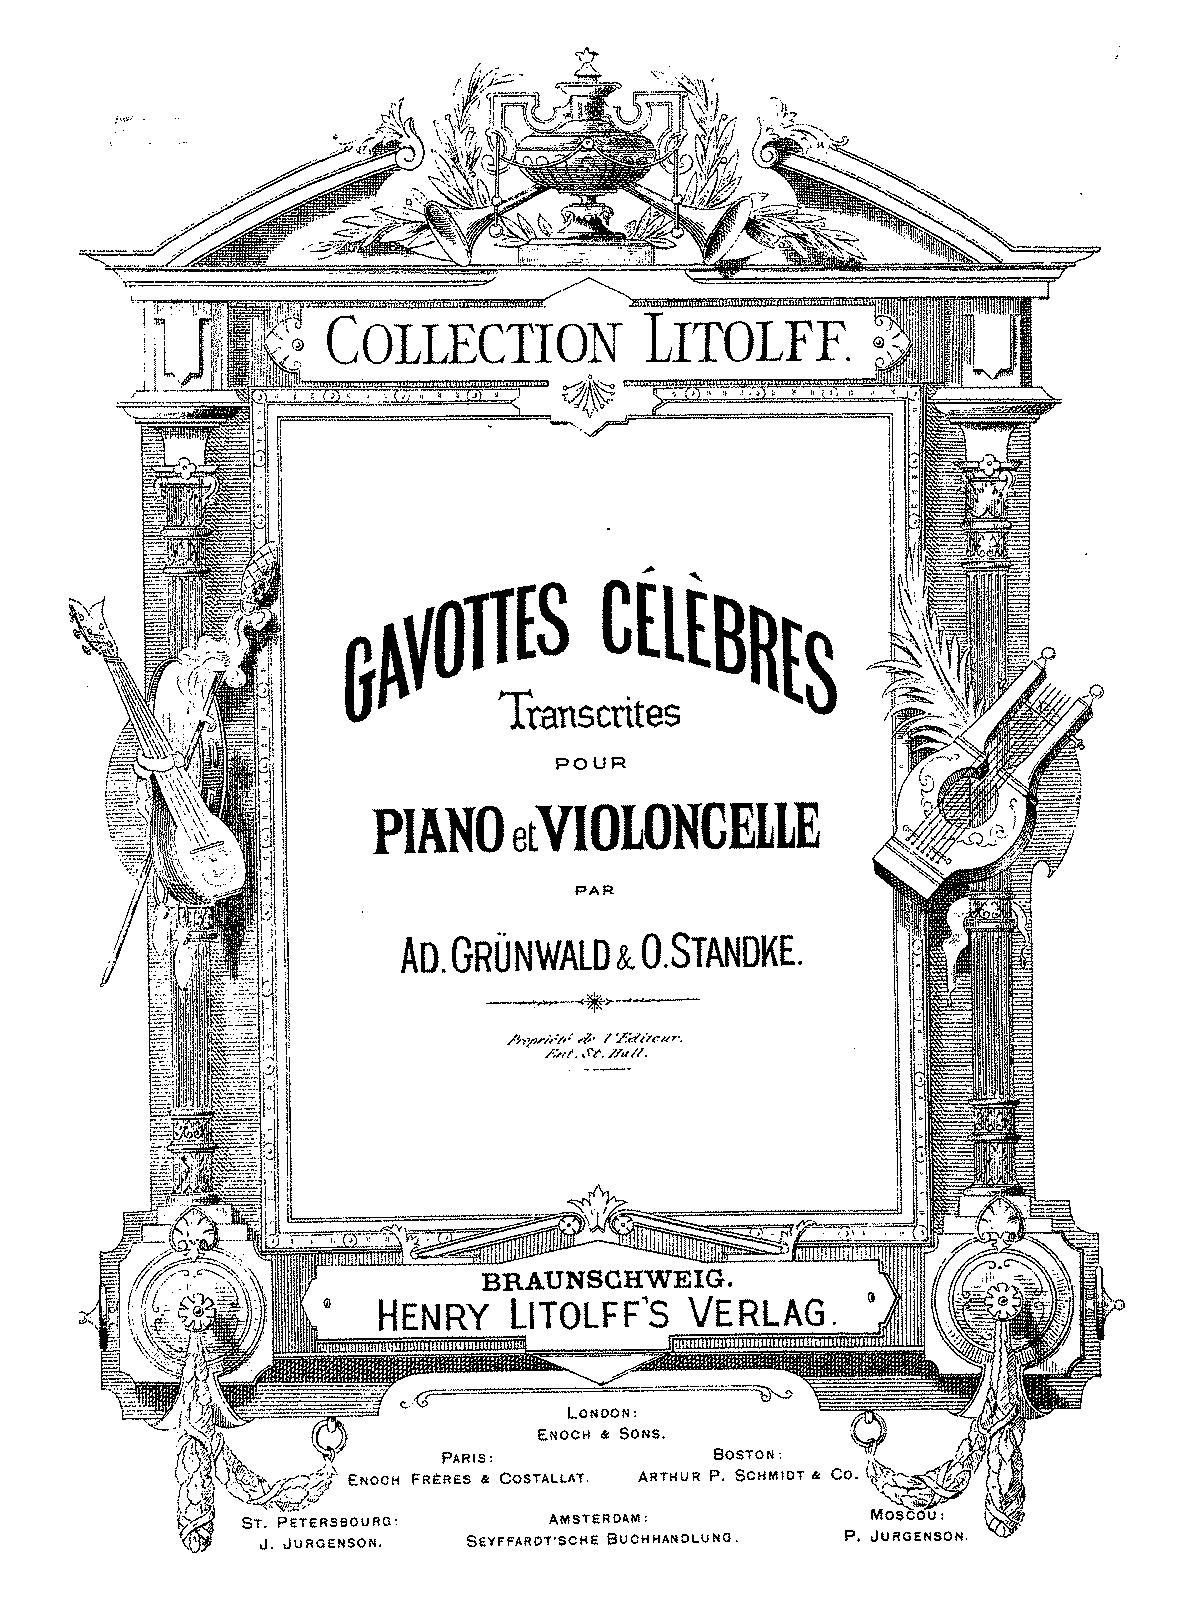 PMLP57846-Rameau - Gavotte Opera Castor et Pollux (Grunwald e Standke) for cello and piano.pdf